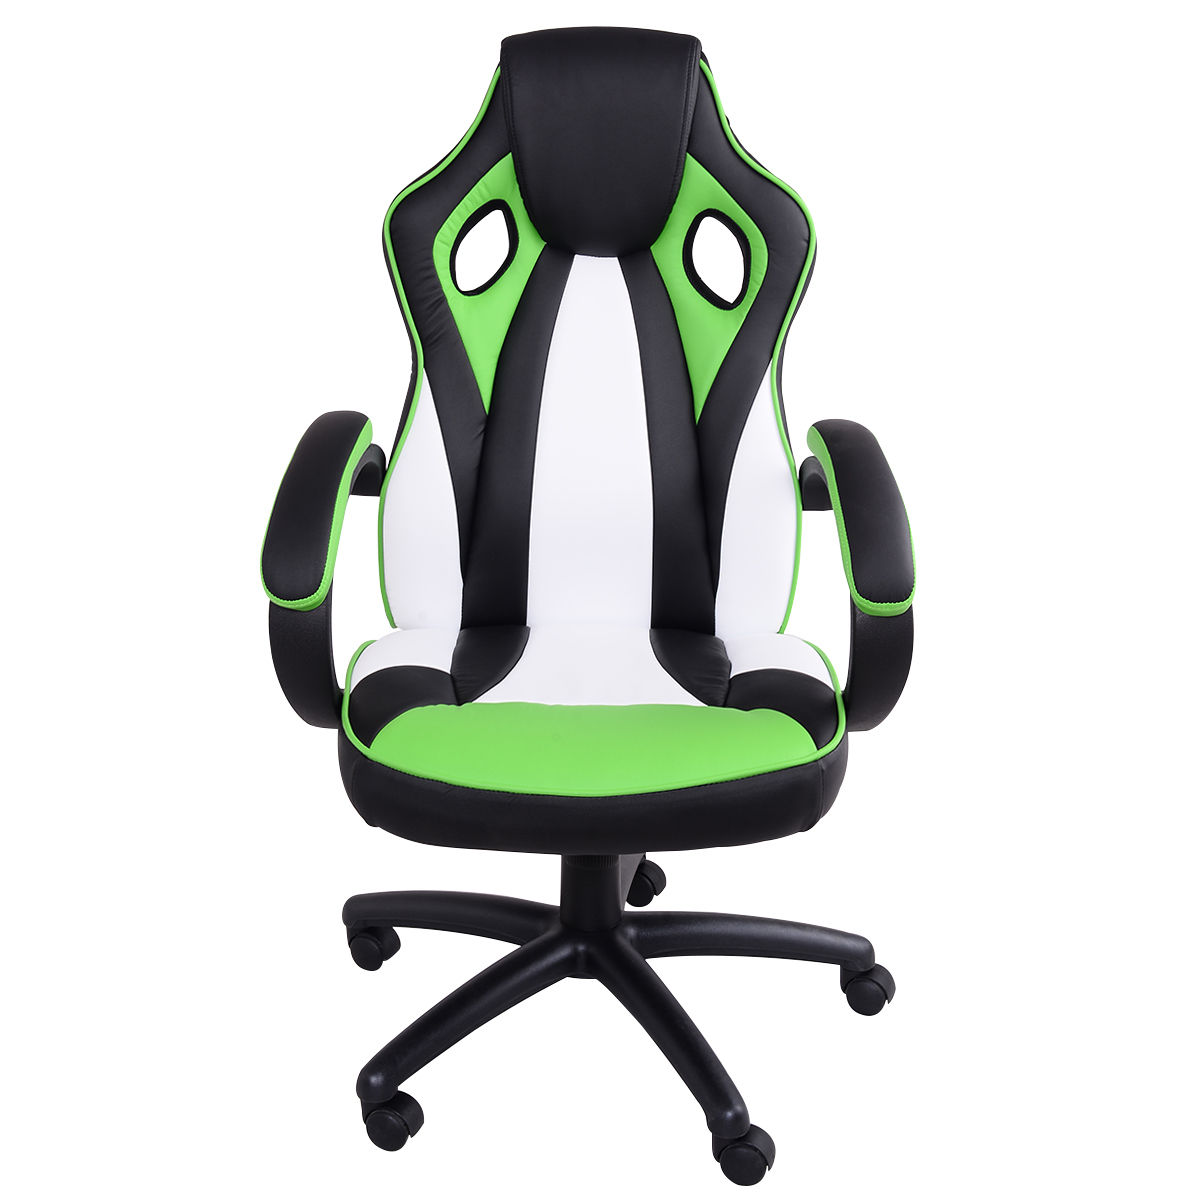 Giantex Executive Racing Office Chair High Back PU Leather Swivel Ergonomic Computer Chair Modern Gaming Chairs HW55036 240340 high quality back pillow office chair 3d handrail function computer household ergonomic chair 360 degree rotating seat